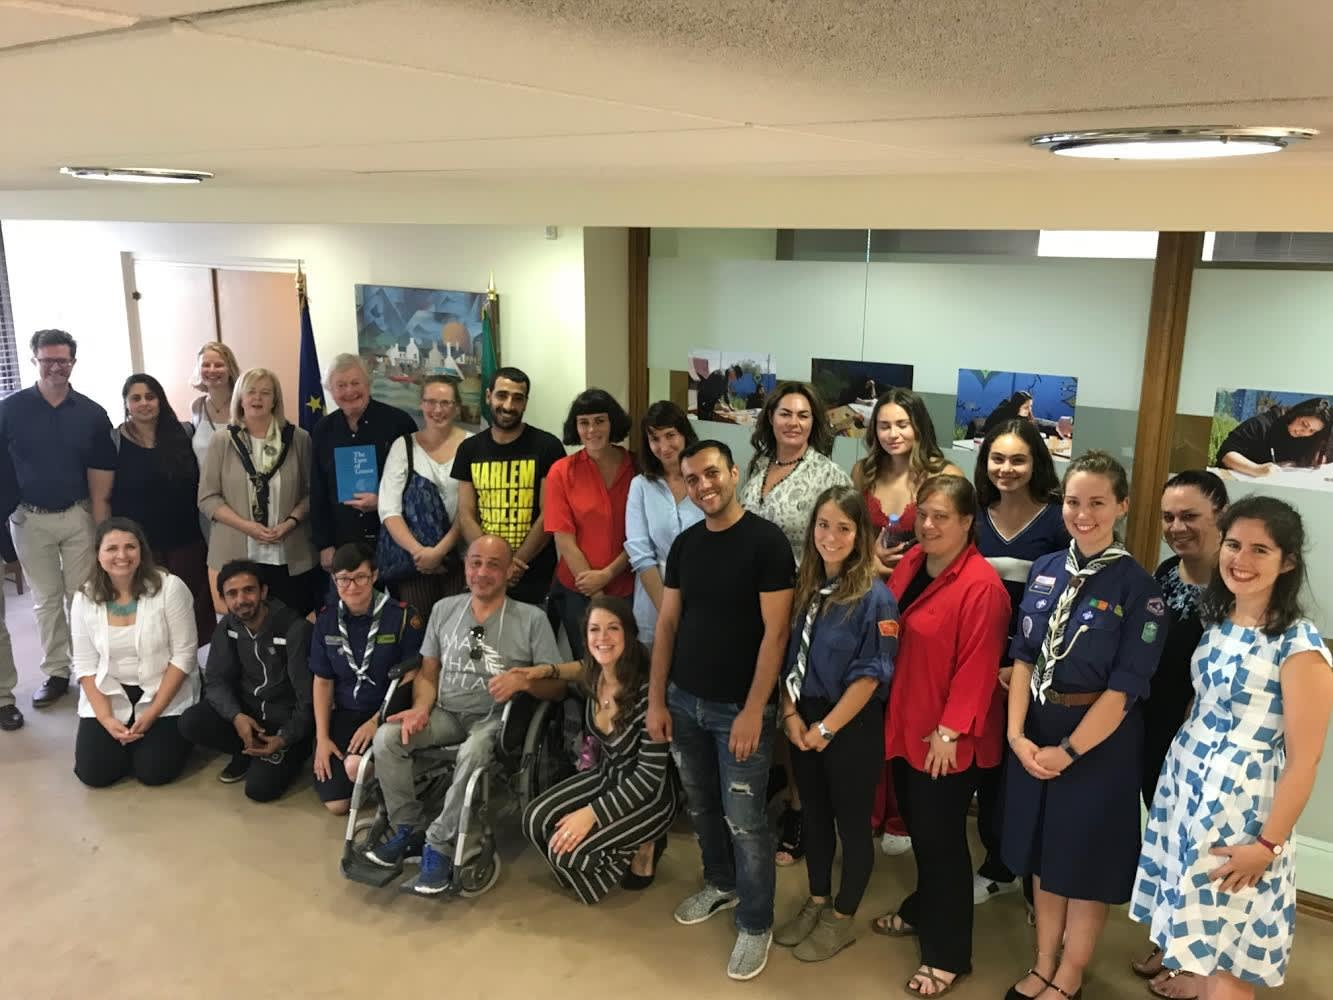 Sculptor John Behan (sixth from left, standing) with refugees, NGO workers and diplomats at the Irish Embassy, Athens this week.